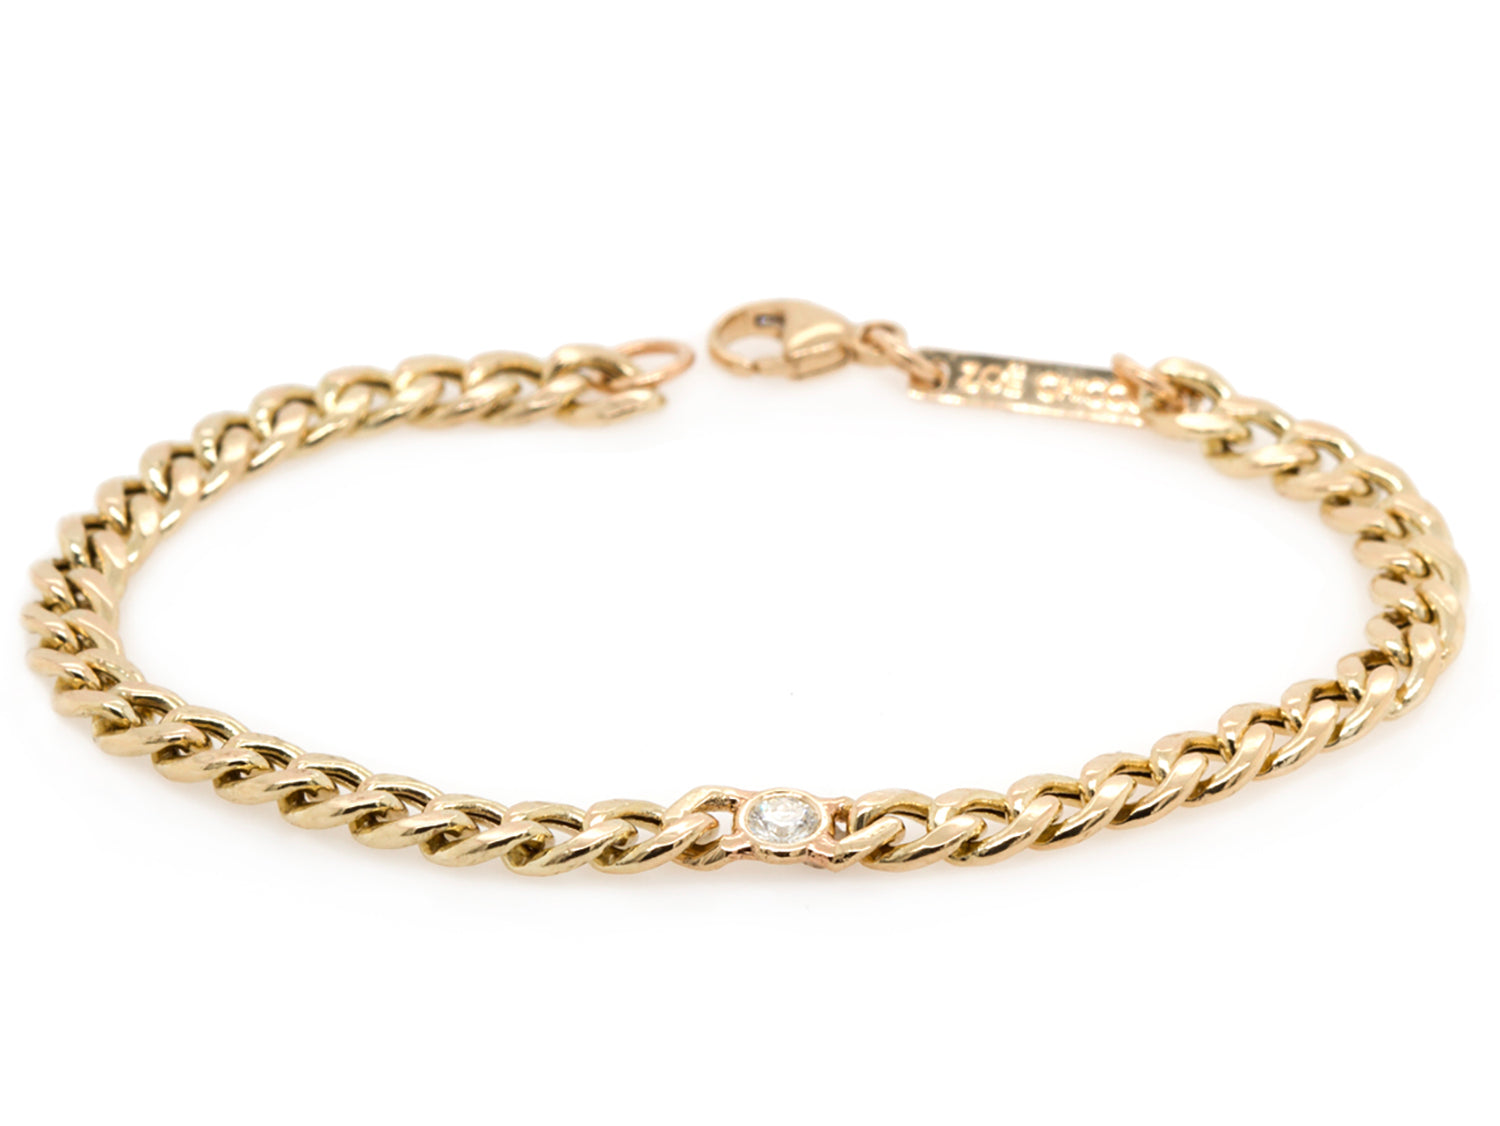 Curb Chain Bracelet with Floating Diamond